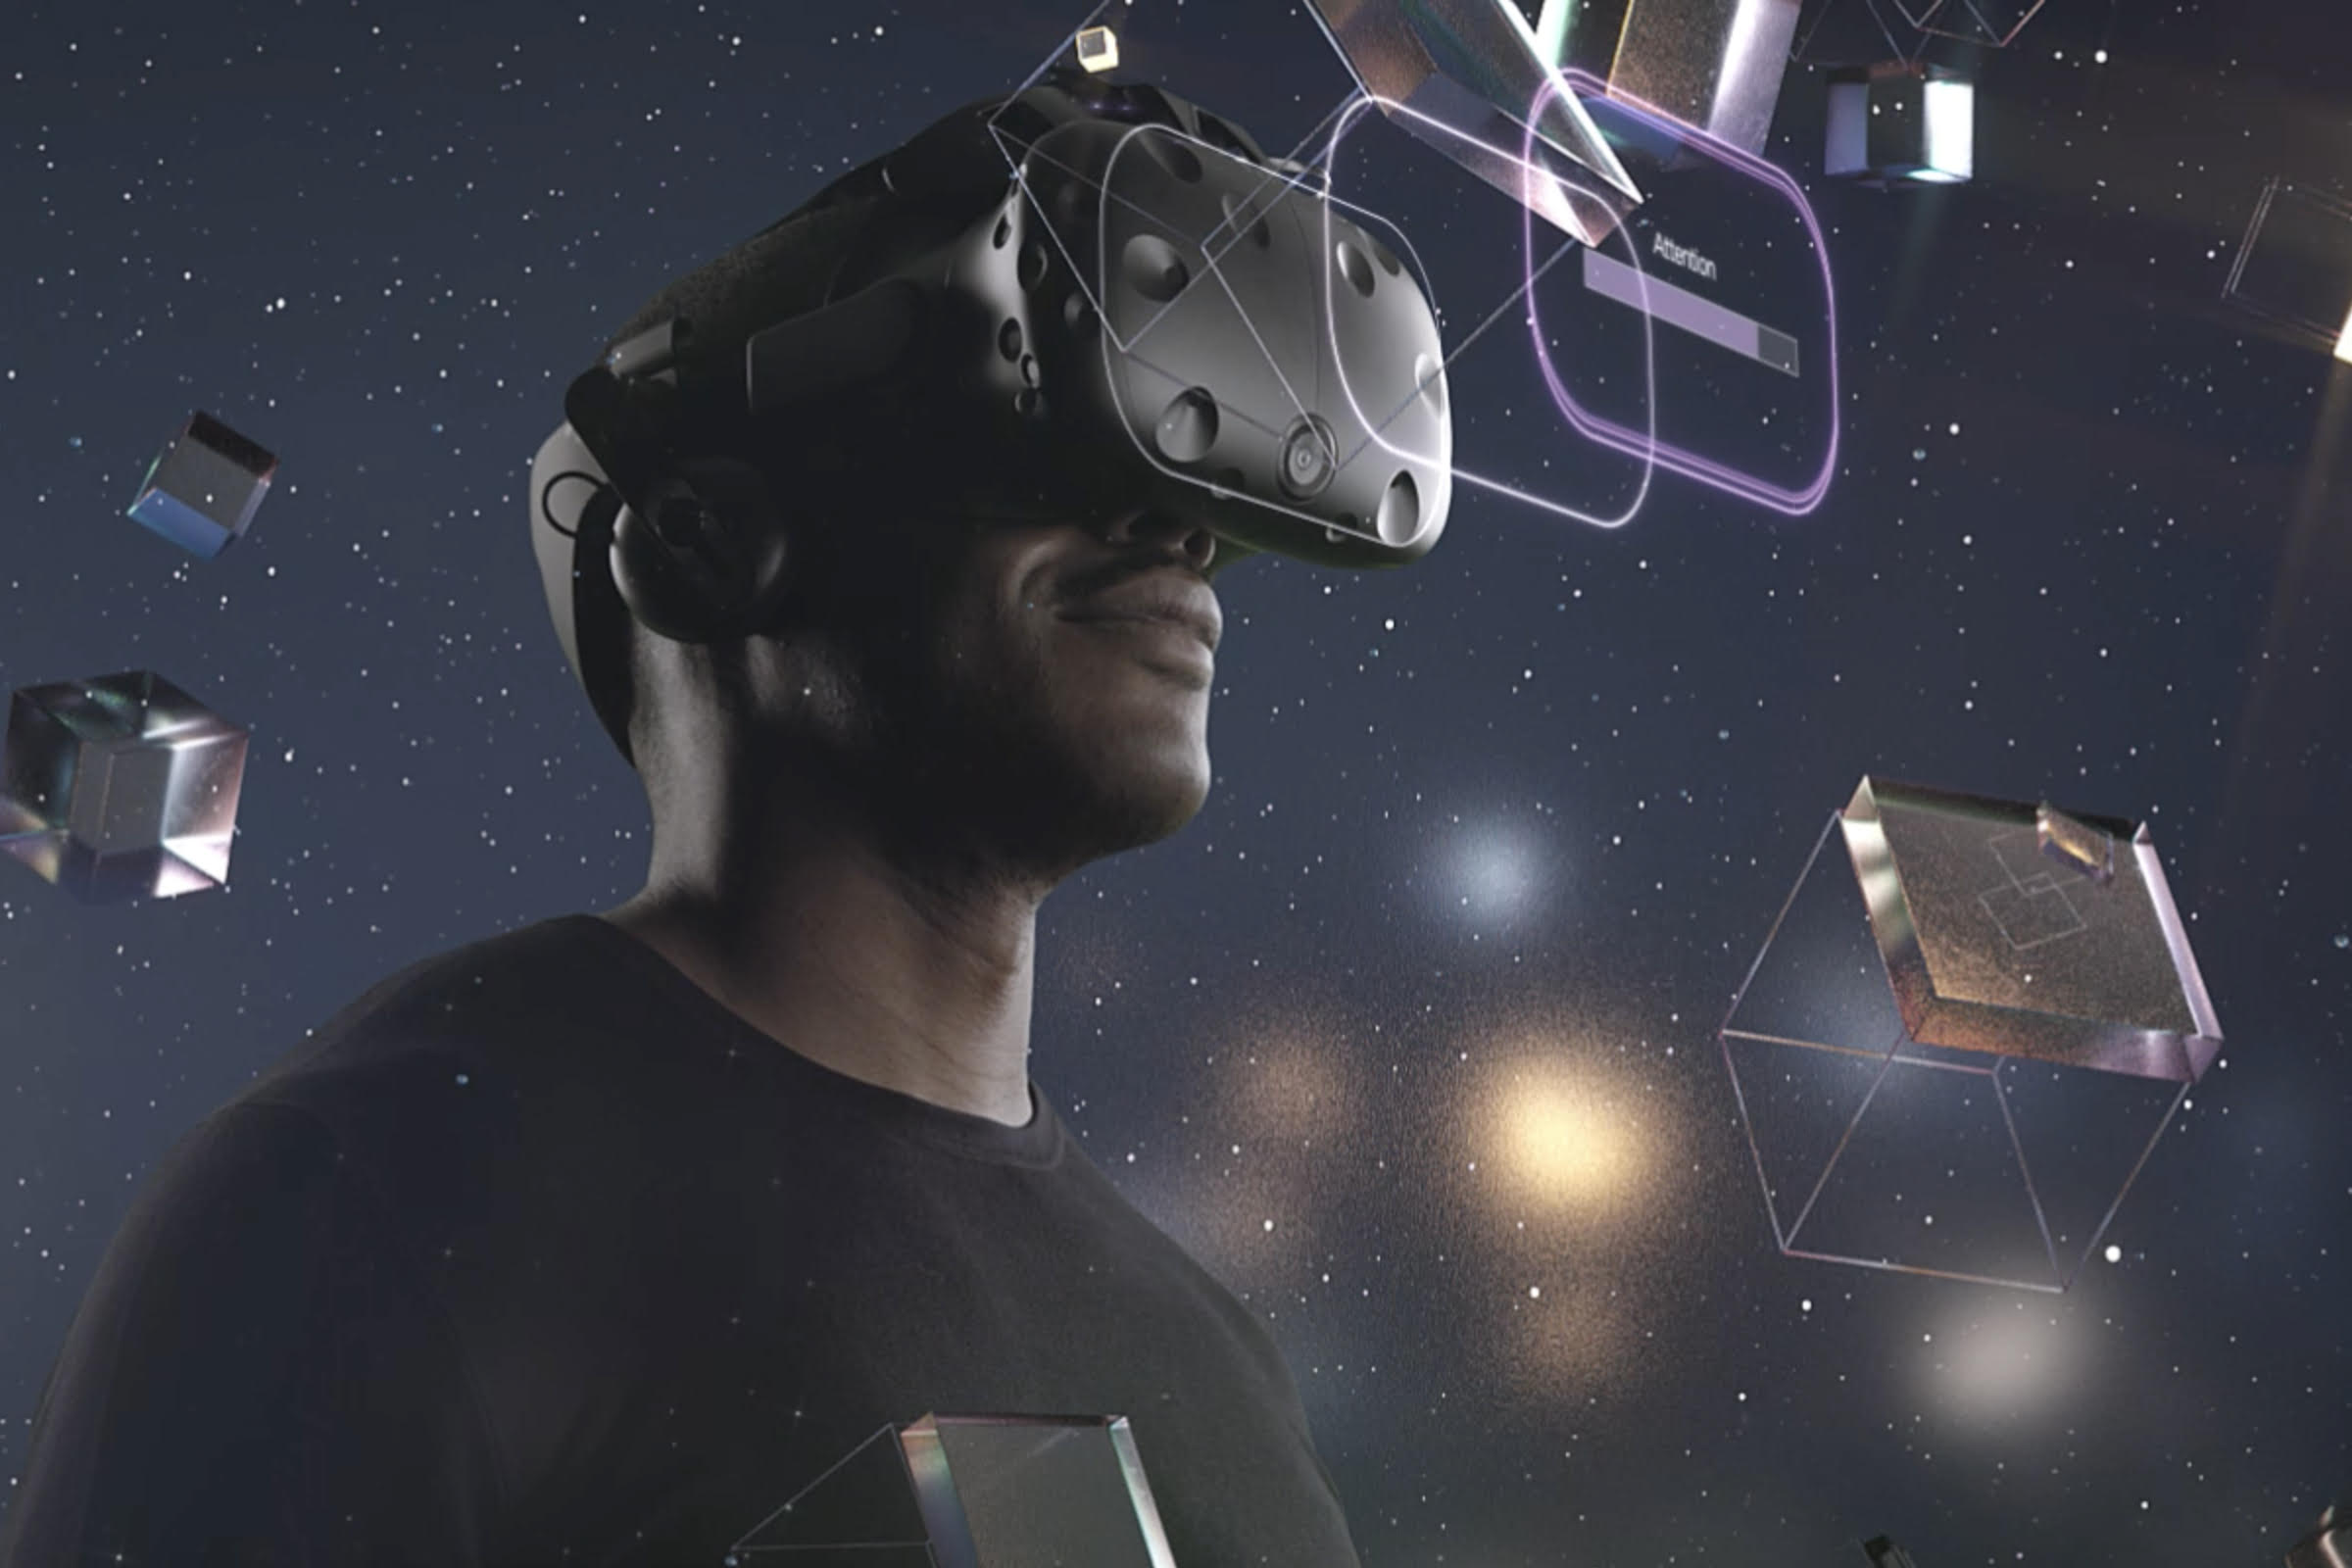 Image of Man Wearing VR Goggles